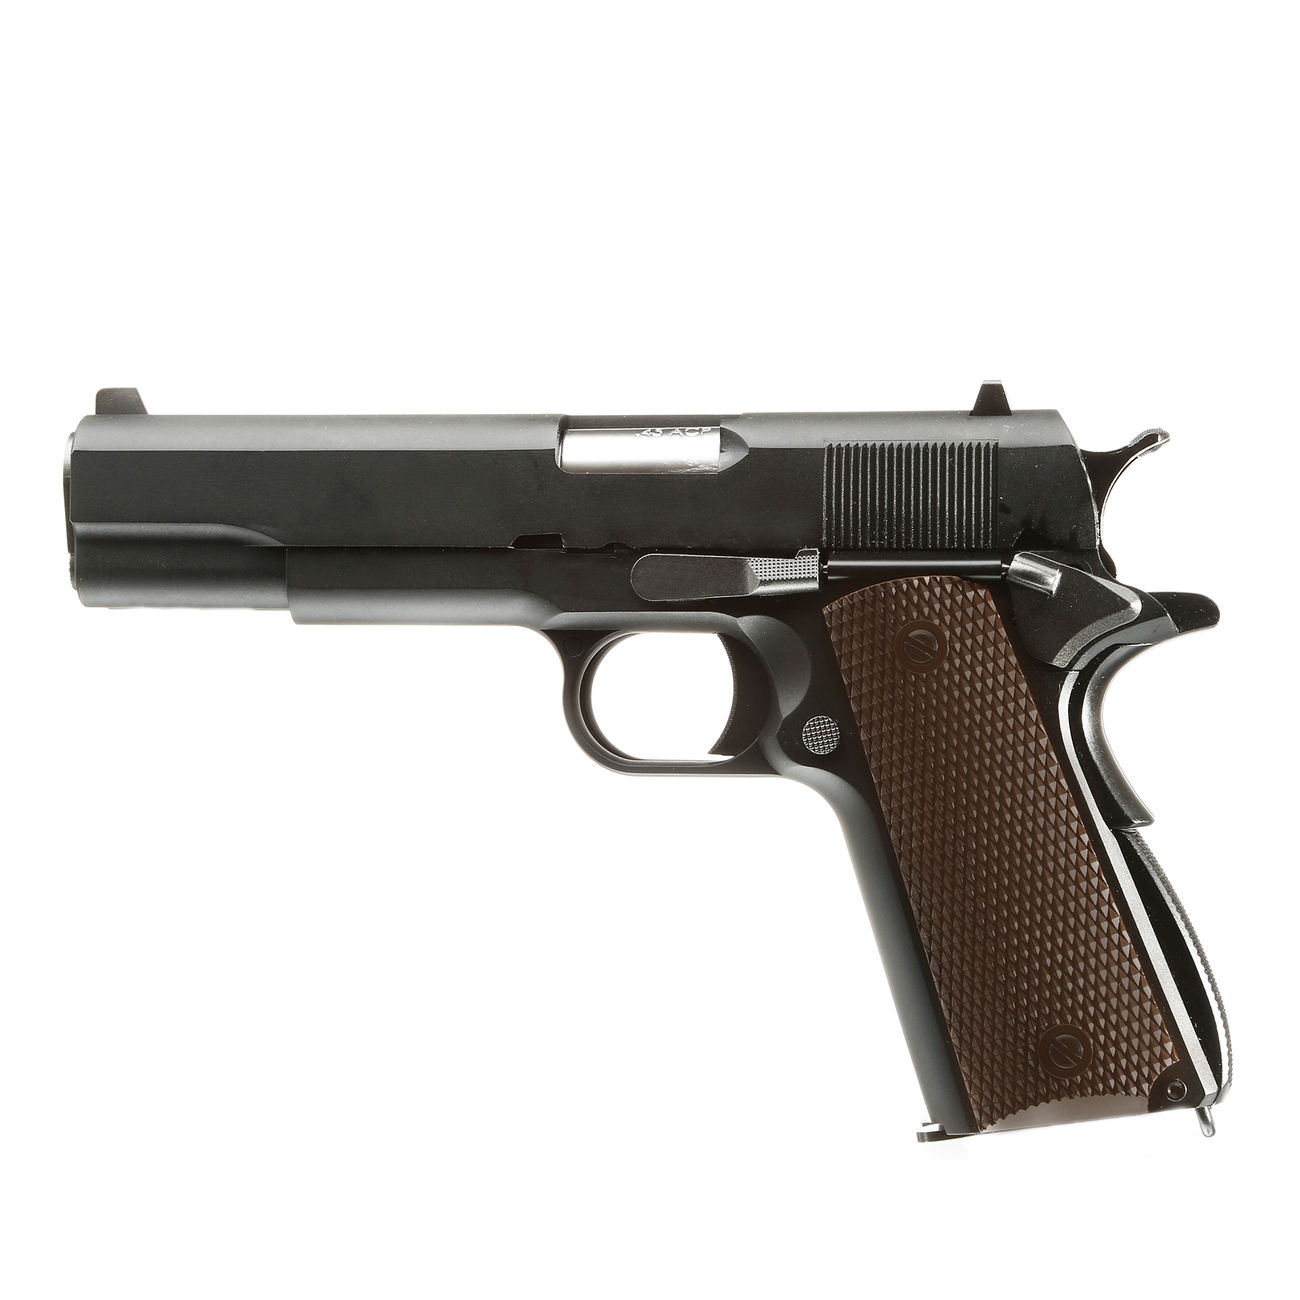 Wei-ETech M1911 Double Barrel Vollmetall GBB 6mm BB schwarz 5